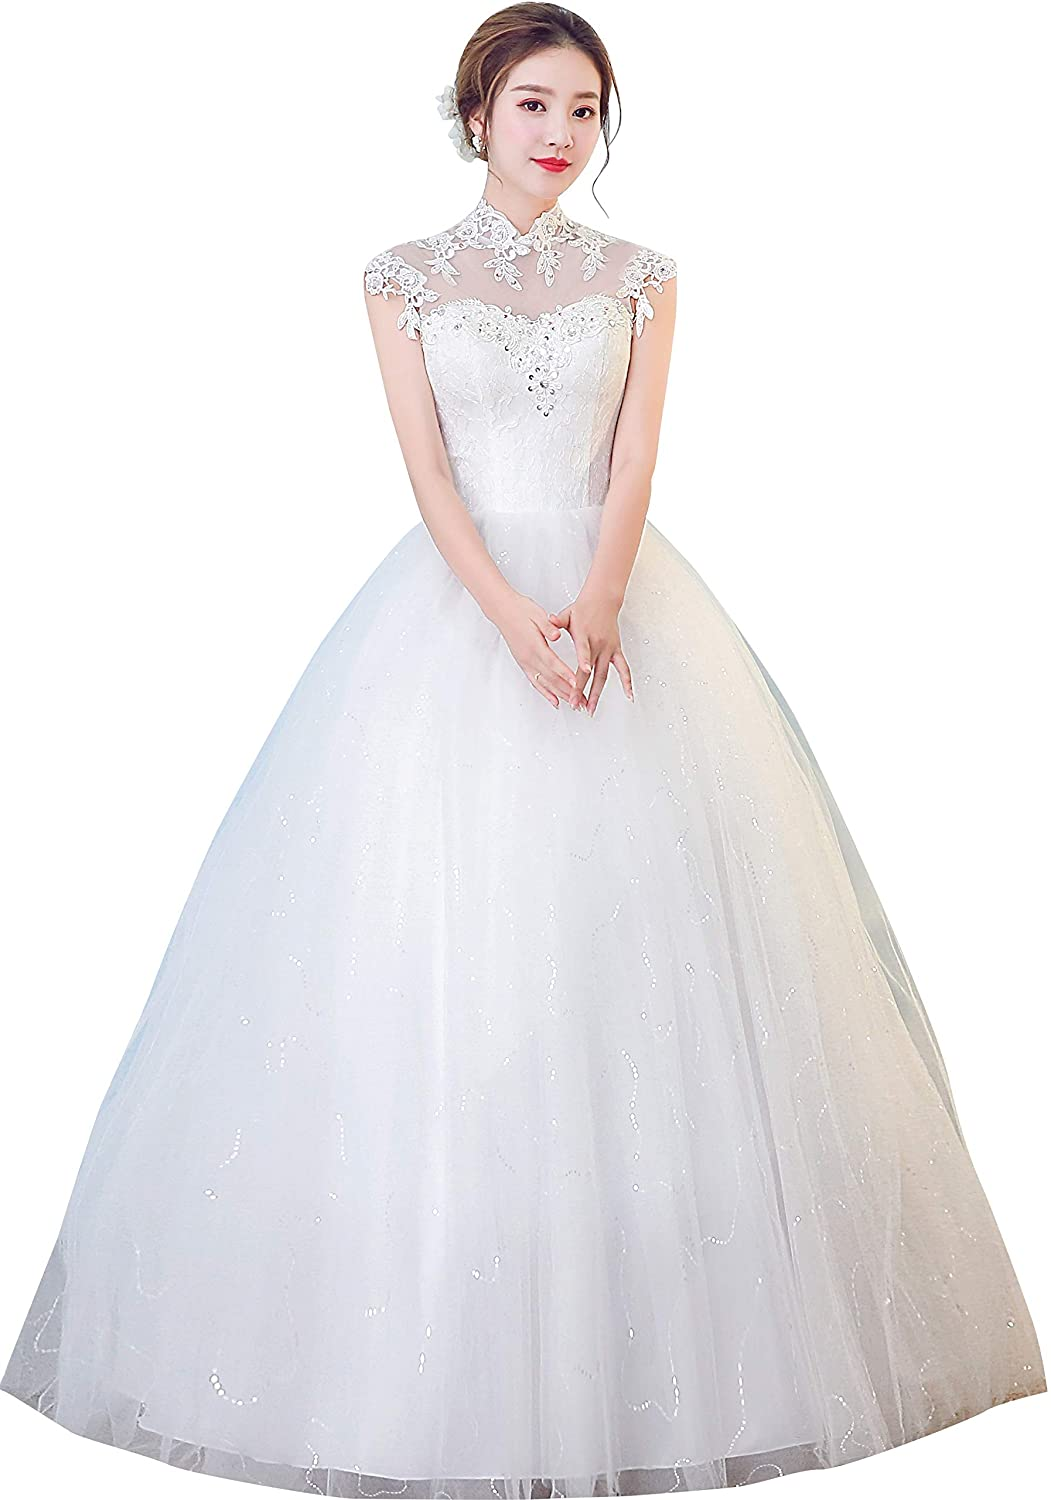 Clover Bridal 2018 Vintage High Collar Appliqued Lace Beading Ball